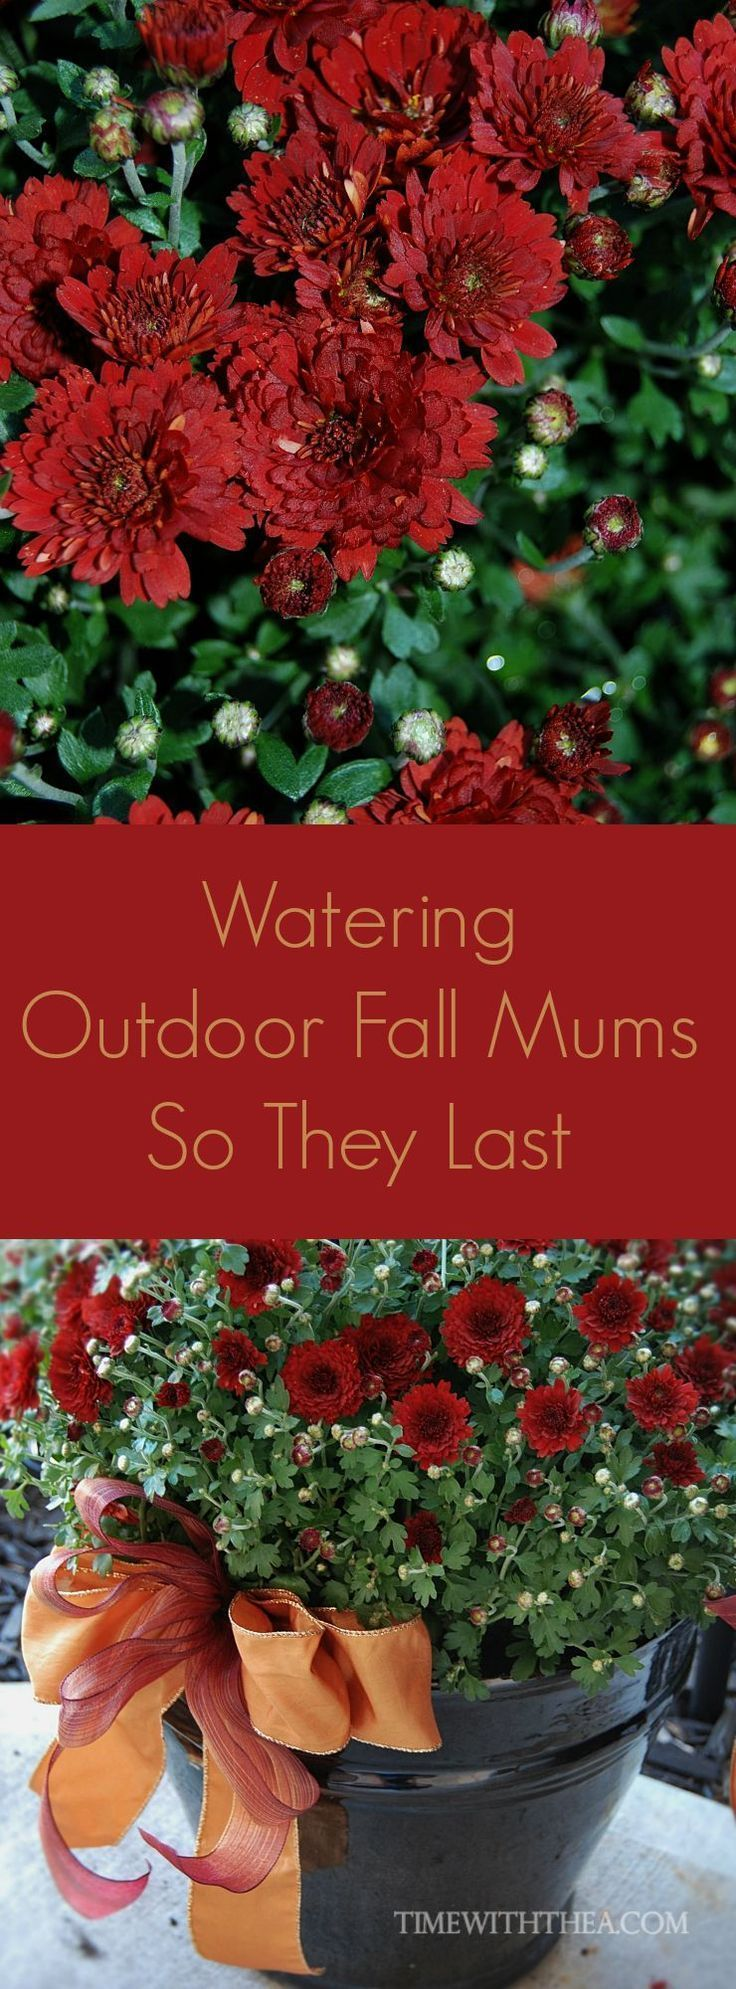 It is easy keep your outdoor Fall Mums healthy and extend their blooming time…